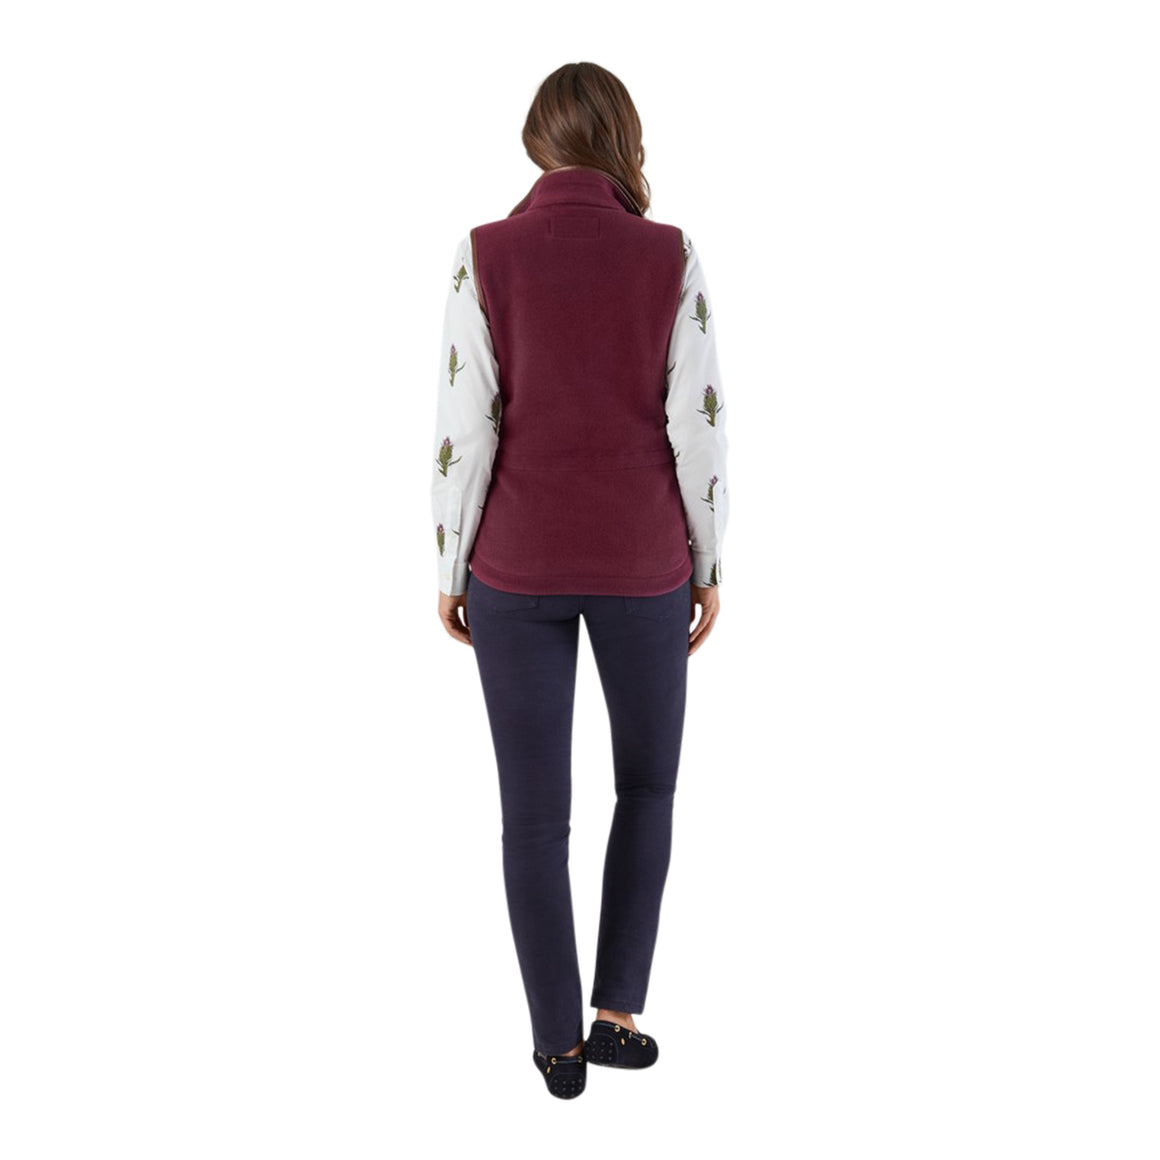 Lyndon Gilet for Women in Fig